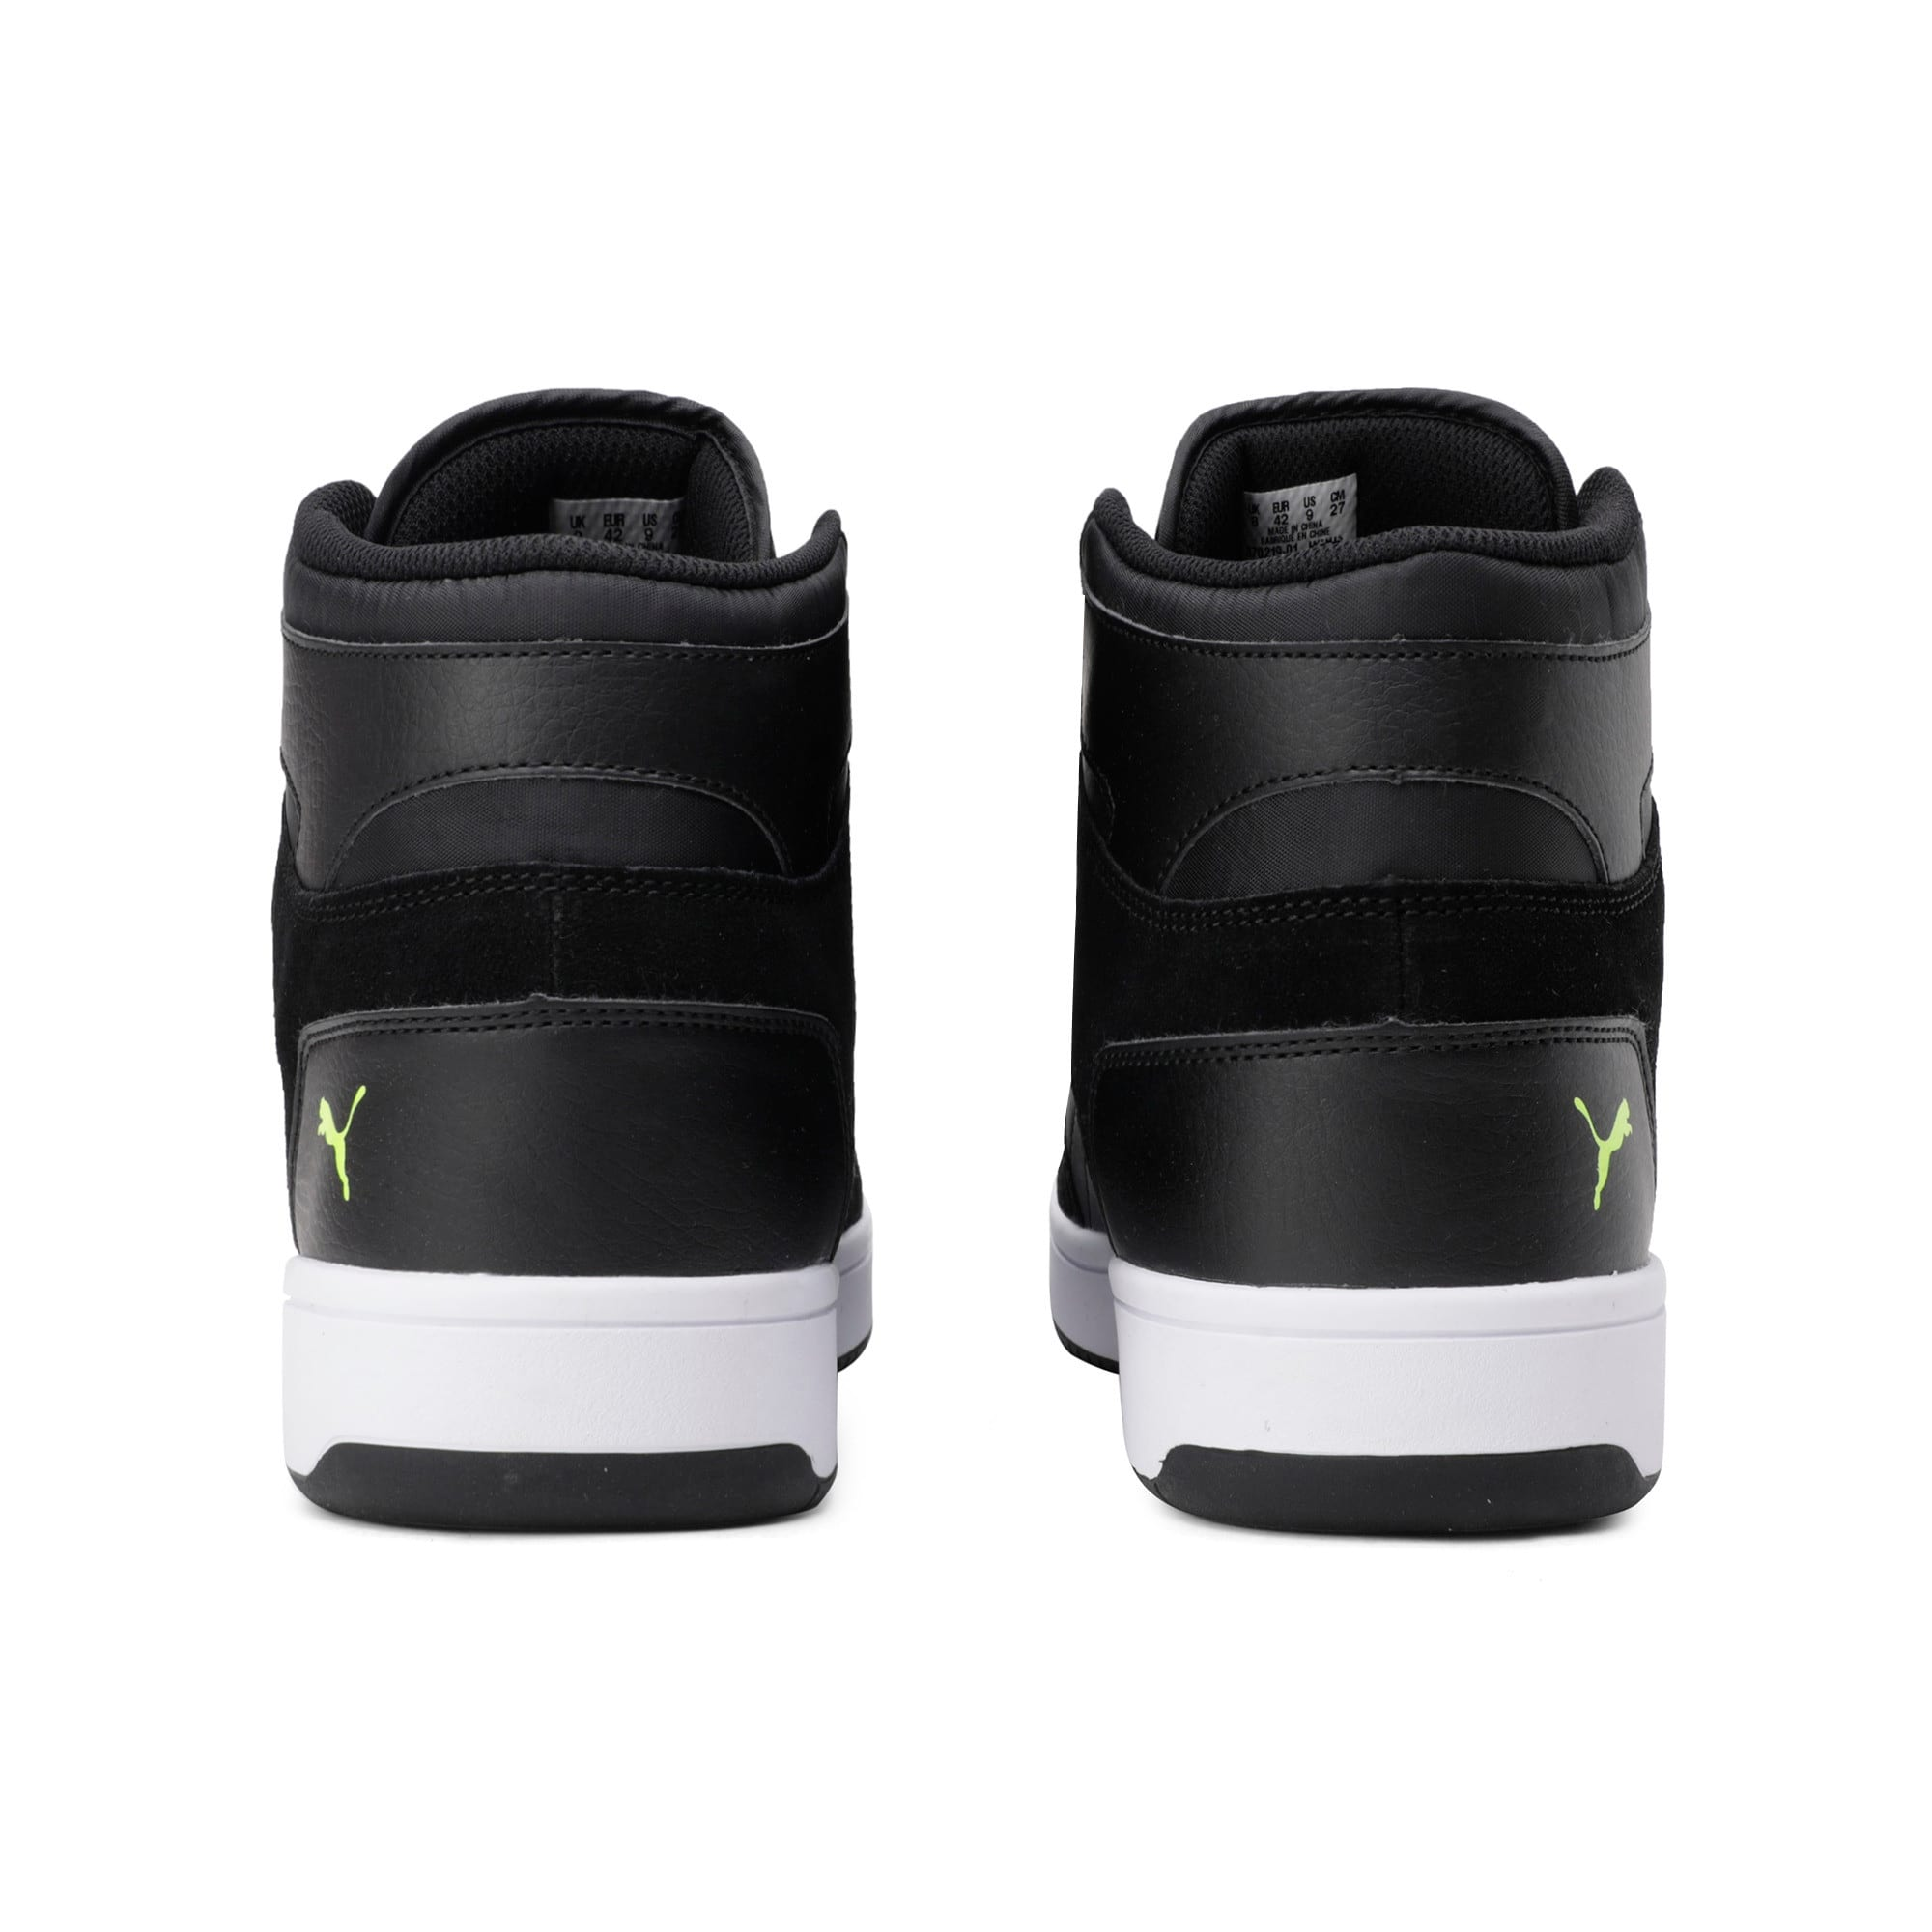 Thumbnail 5 of Rebound Layup Suede Trainers, Black-Yellow Alert-White, medium-IND